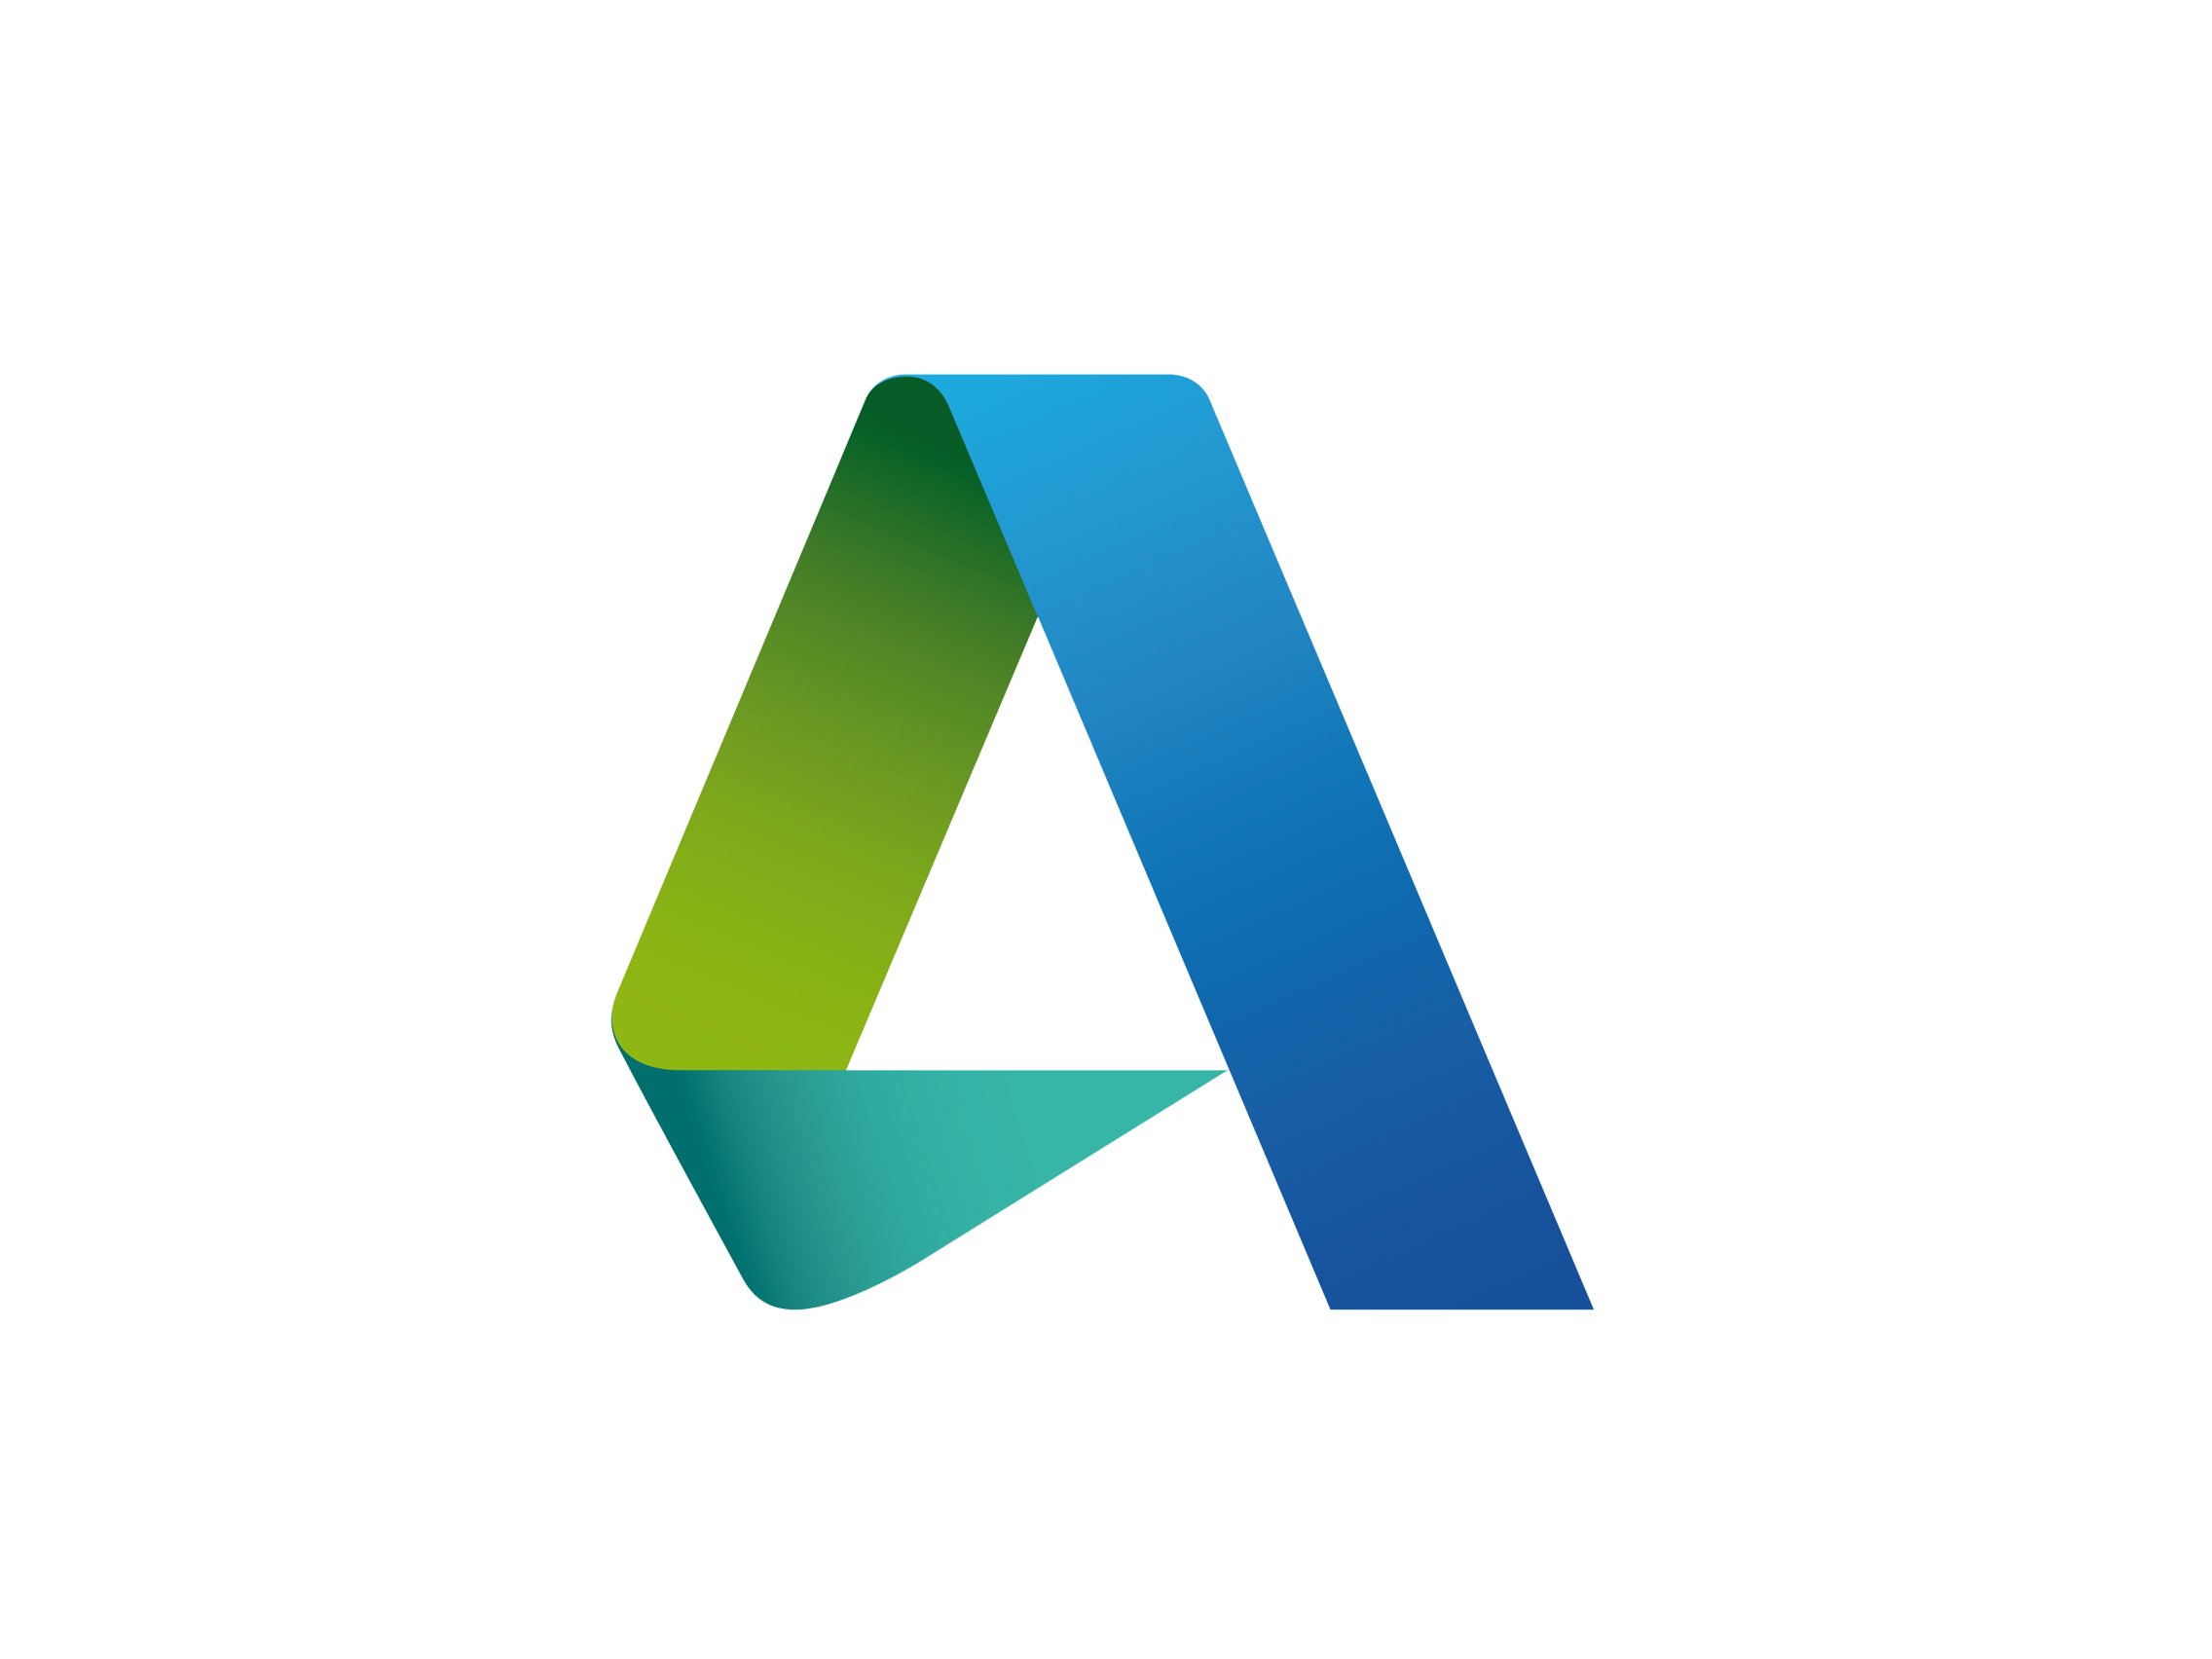 Autodesk Logo Wallpaper